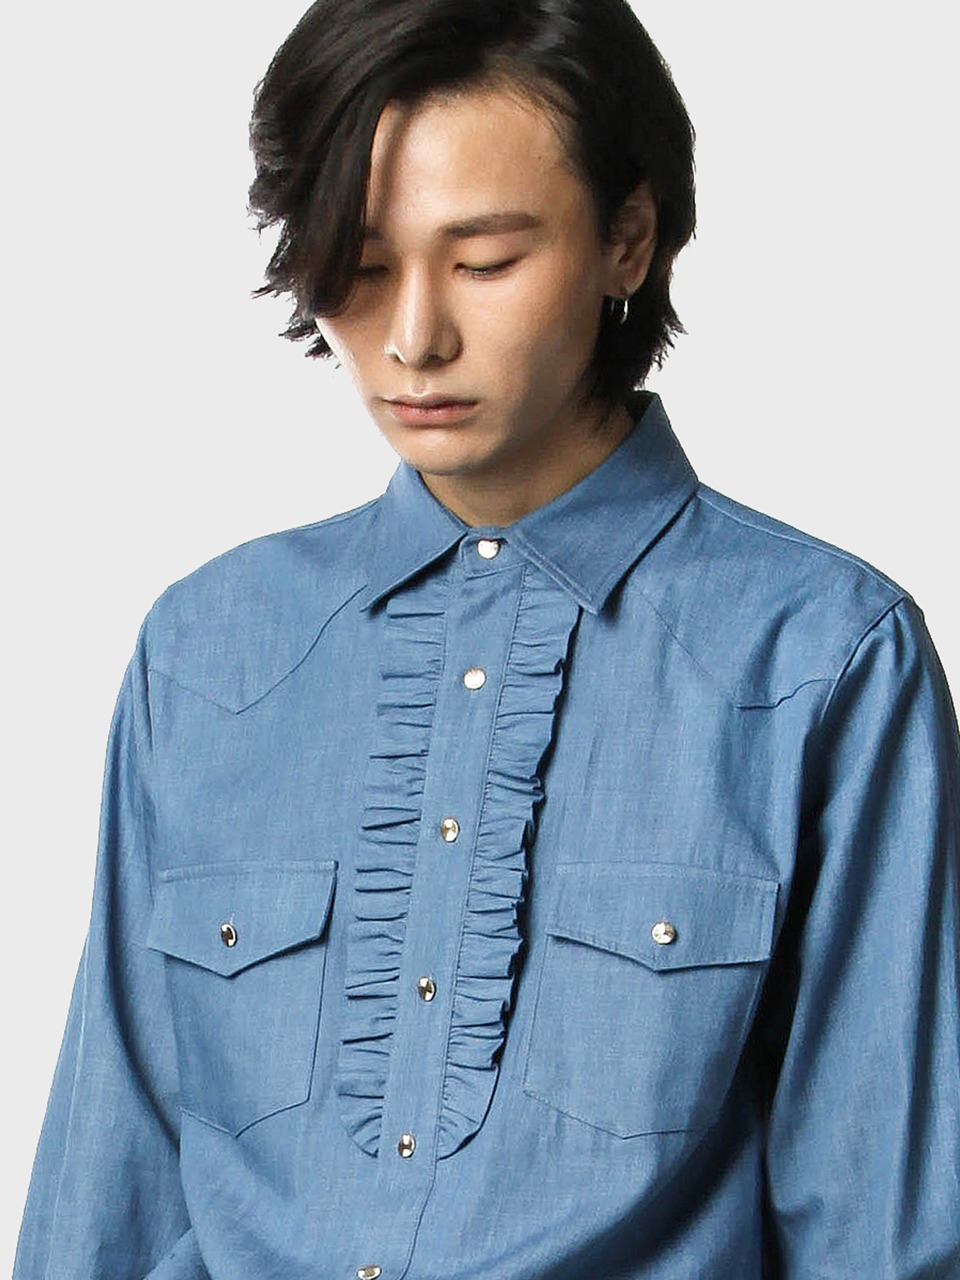 western frill denim shirts